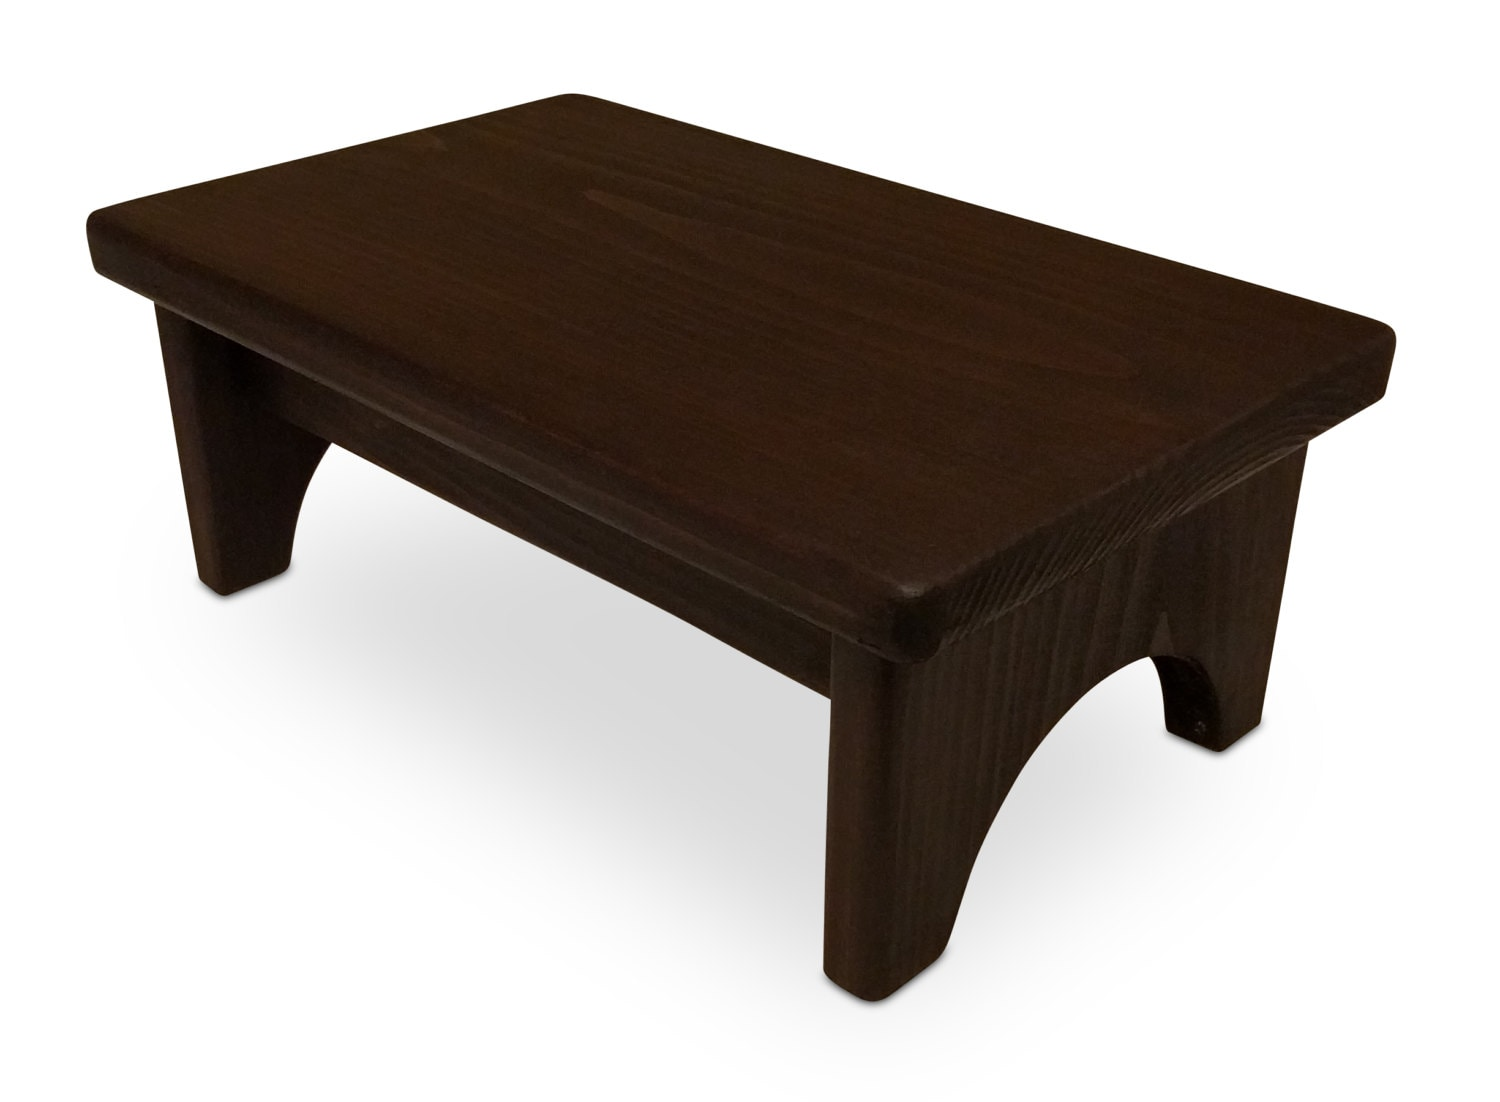 Hollandcraft Wood Step Stool Wooden Foot Stool Bed Step